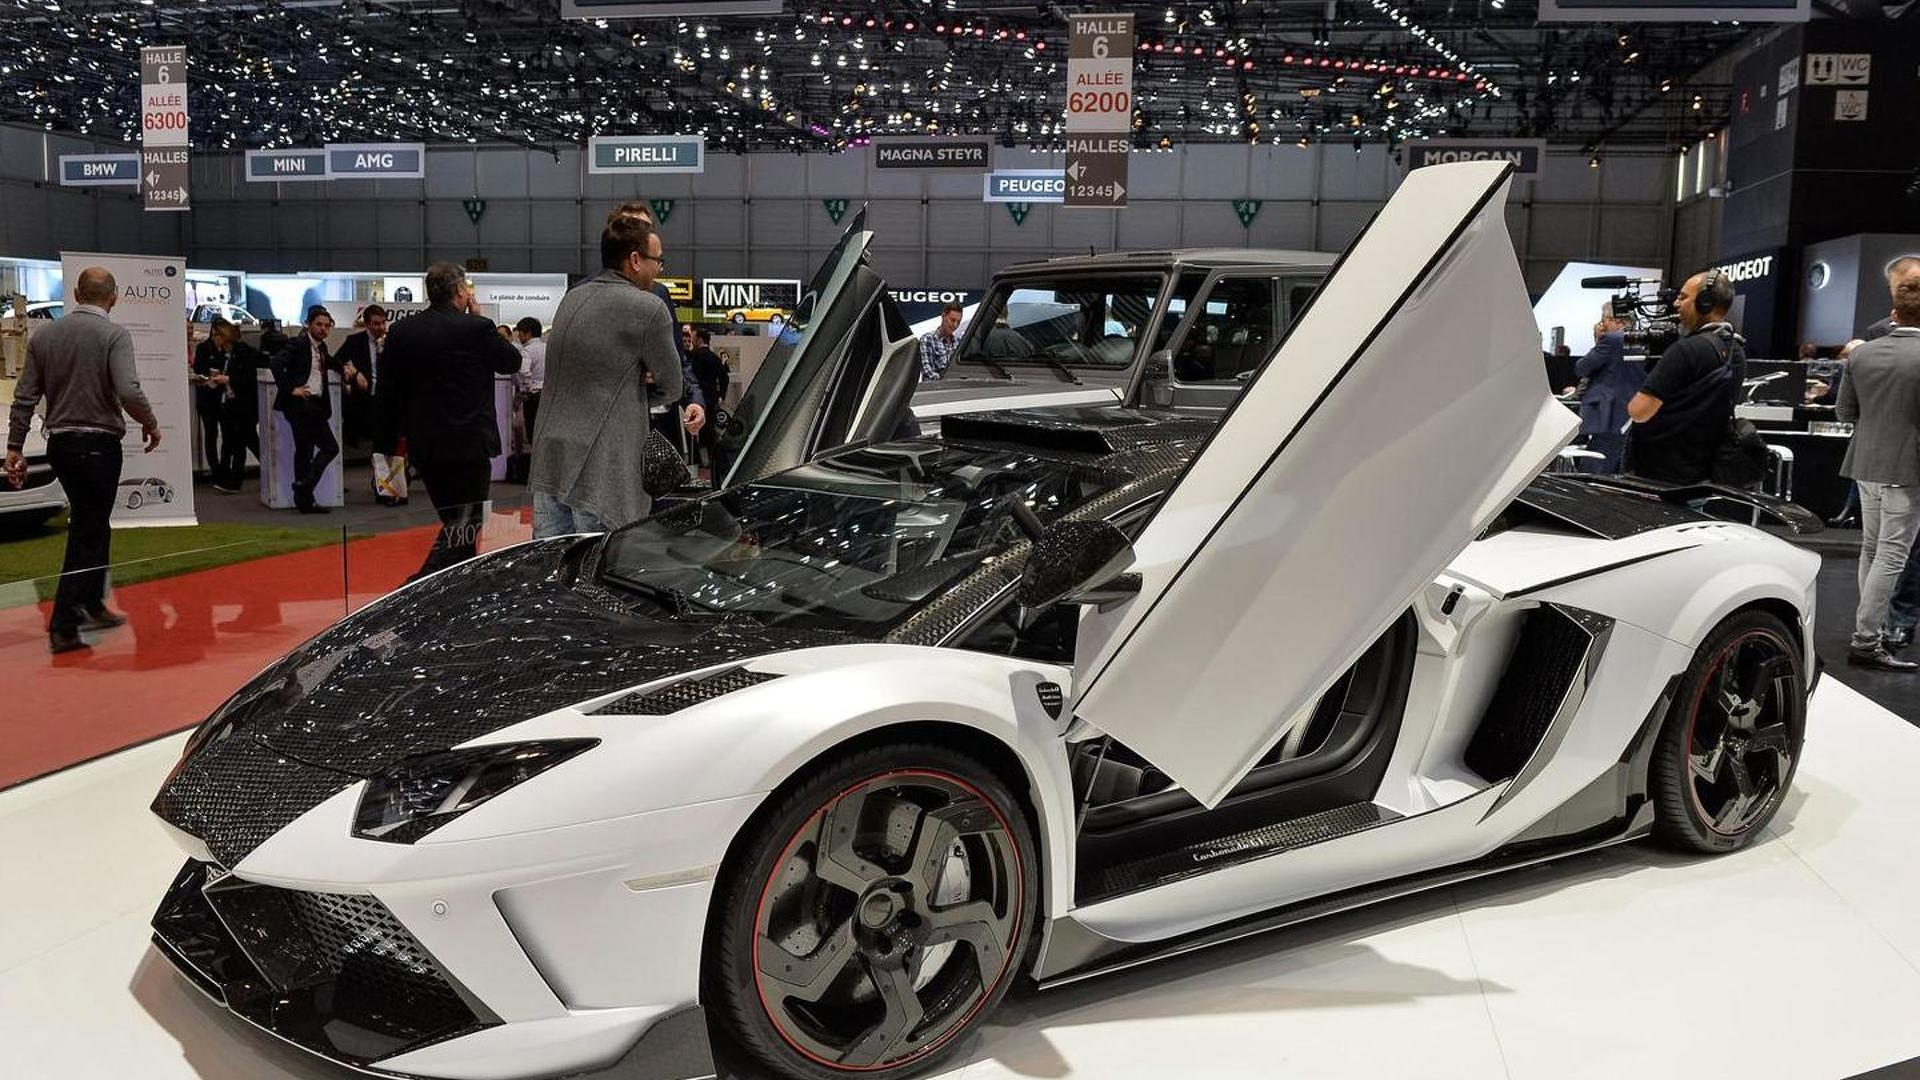 Mansory Carbonado Gt Is A Twin Turbo Lamborghini Aventador With 1600 Hp